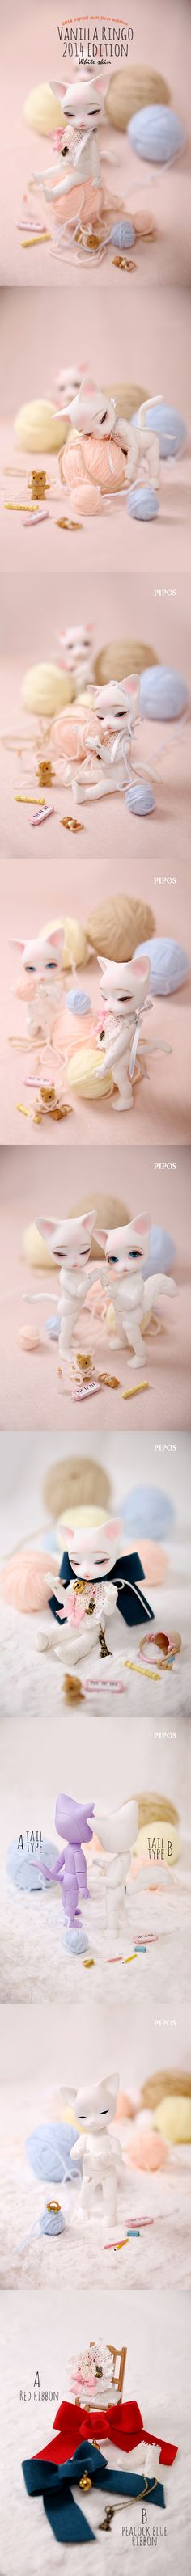 Pipos dolls are so cute! I've seen the real one myself >< #pipos #bjd #animal